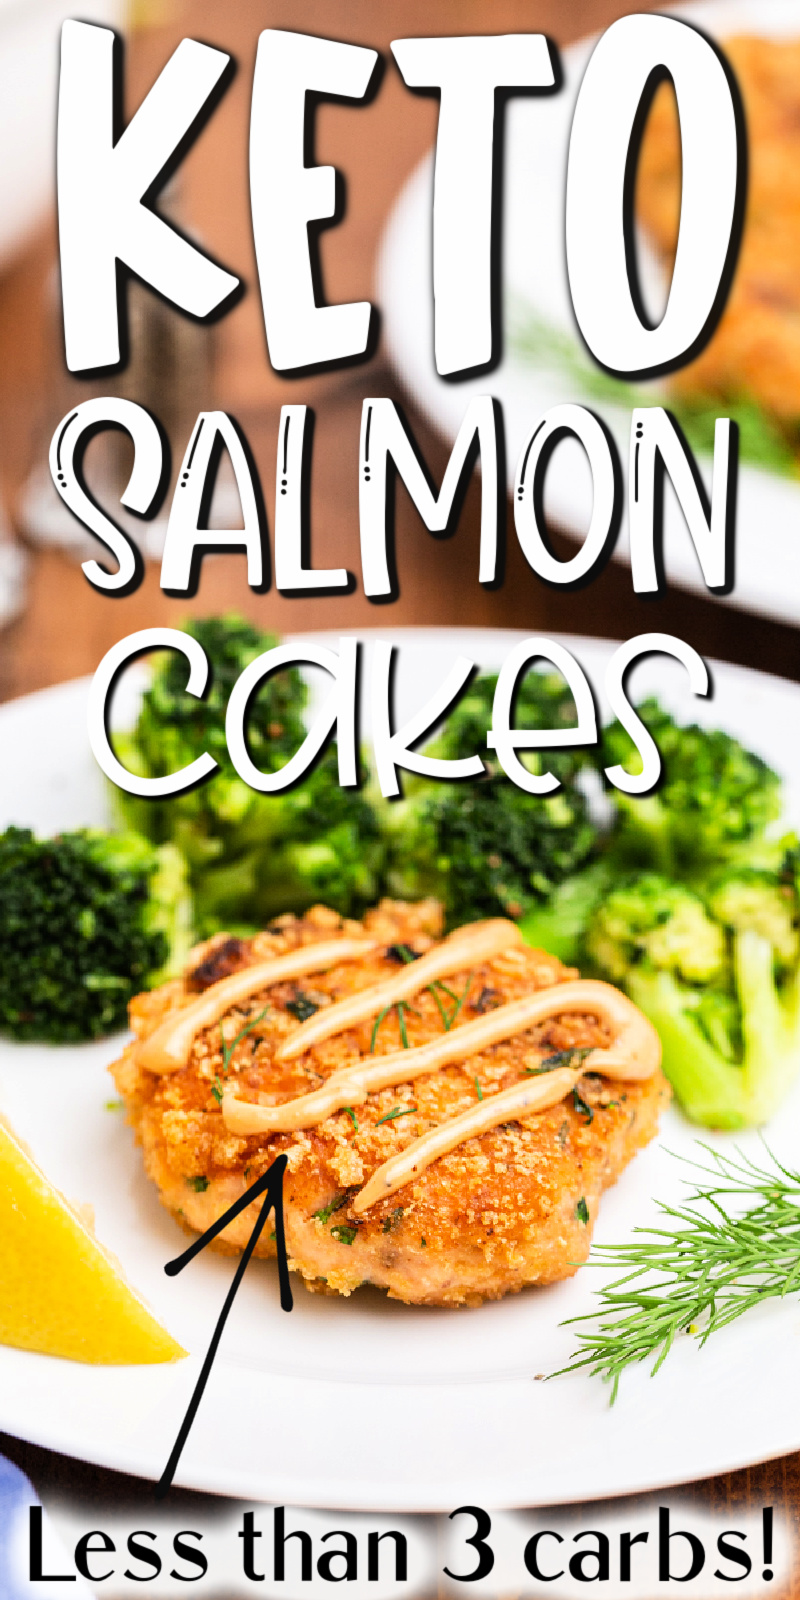 Keto Salmon Cakes (Salmon Patties) - These keto salmon cakes (salmon patties) are a delicious way to enjoy salmon. Packed with fresh salmon (no cans here) and fresh herbs, even the pickiest eater will love being low carb! #keto #lowcarb #glutenfree #salmon #fish #cake #patty #patties #easy #fresh #recipe